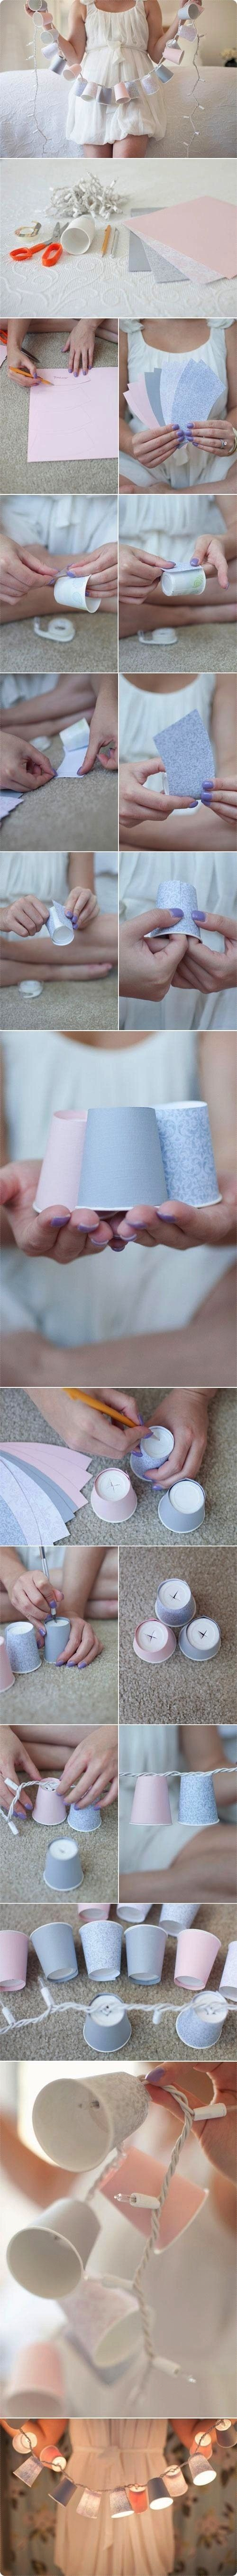 Turn Dixie cups into a light-up garland. | 24 Clever DIY Ways To Light Your Home